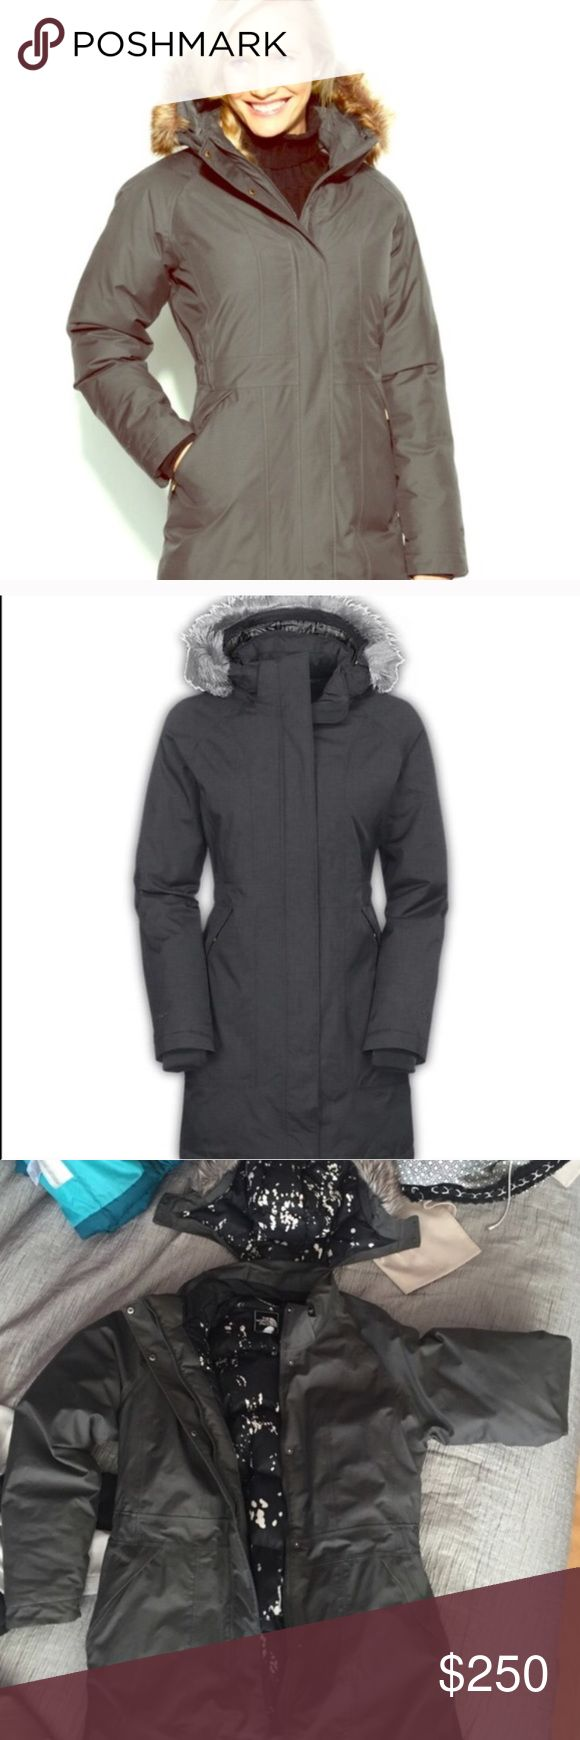 North Face Arctic Parka This is a down feather arctic parka. Basically new! No signs or wear. Such a warm jacket! The North Face Jackets & Coats